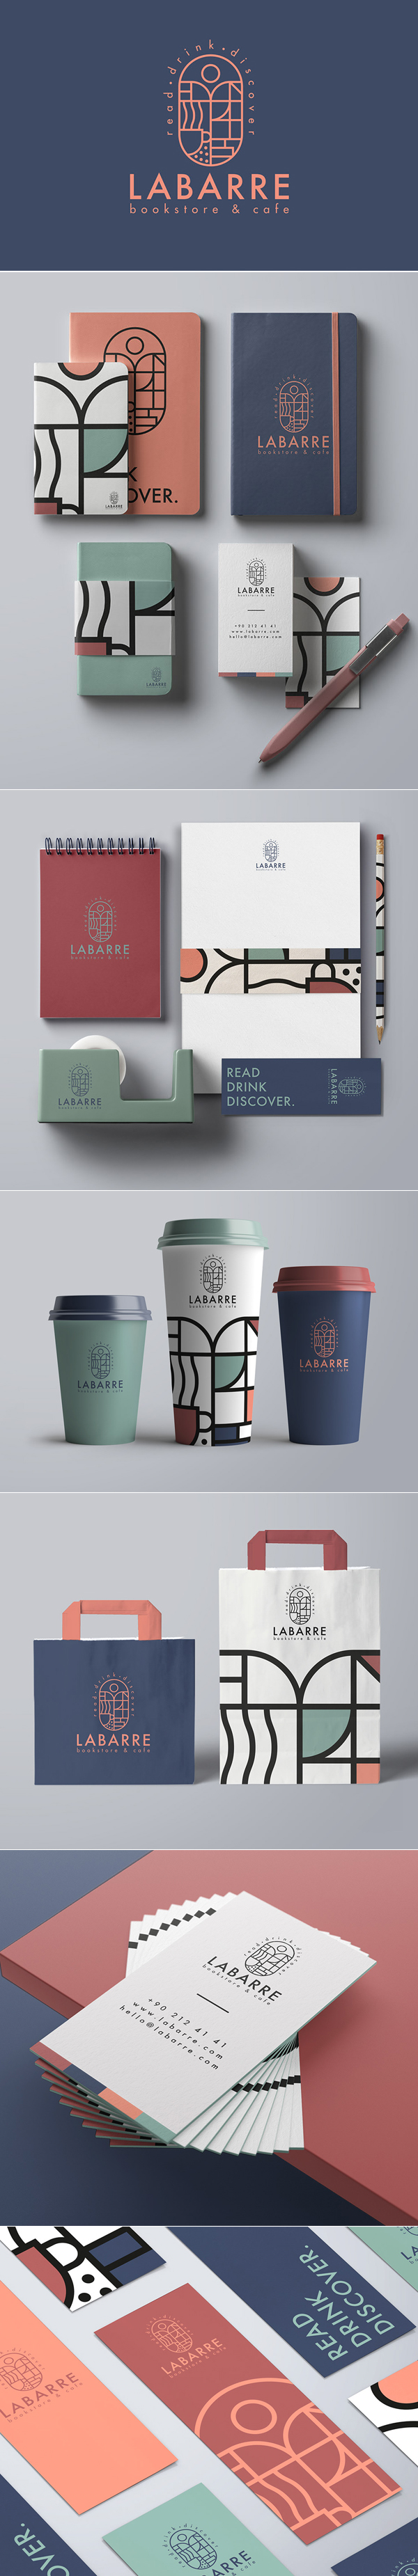 Branding: Labarre Bookstore & Cafe Branding Design by ONTO Design Studio